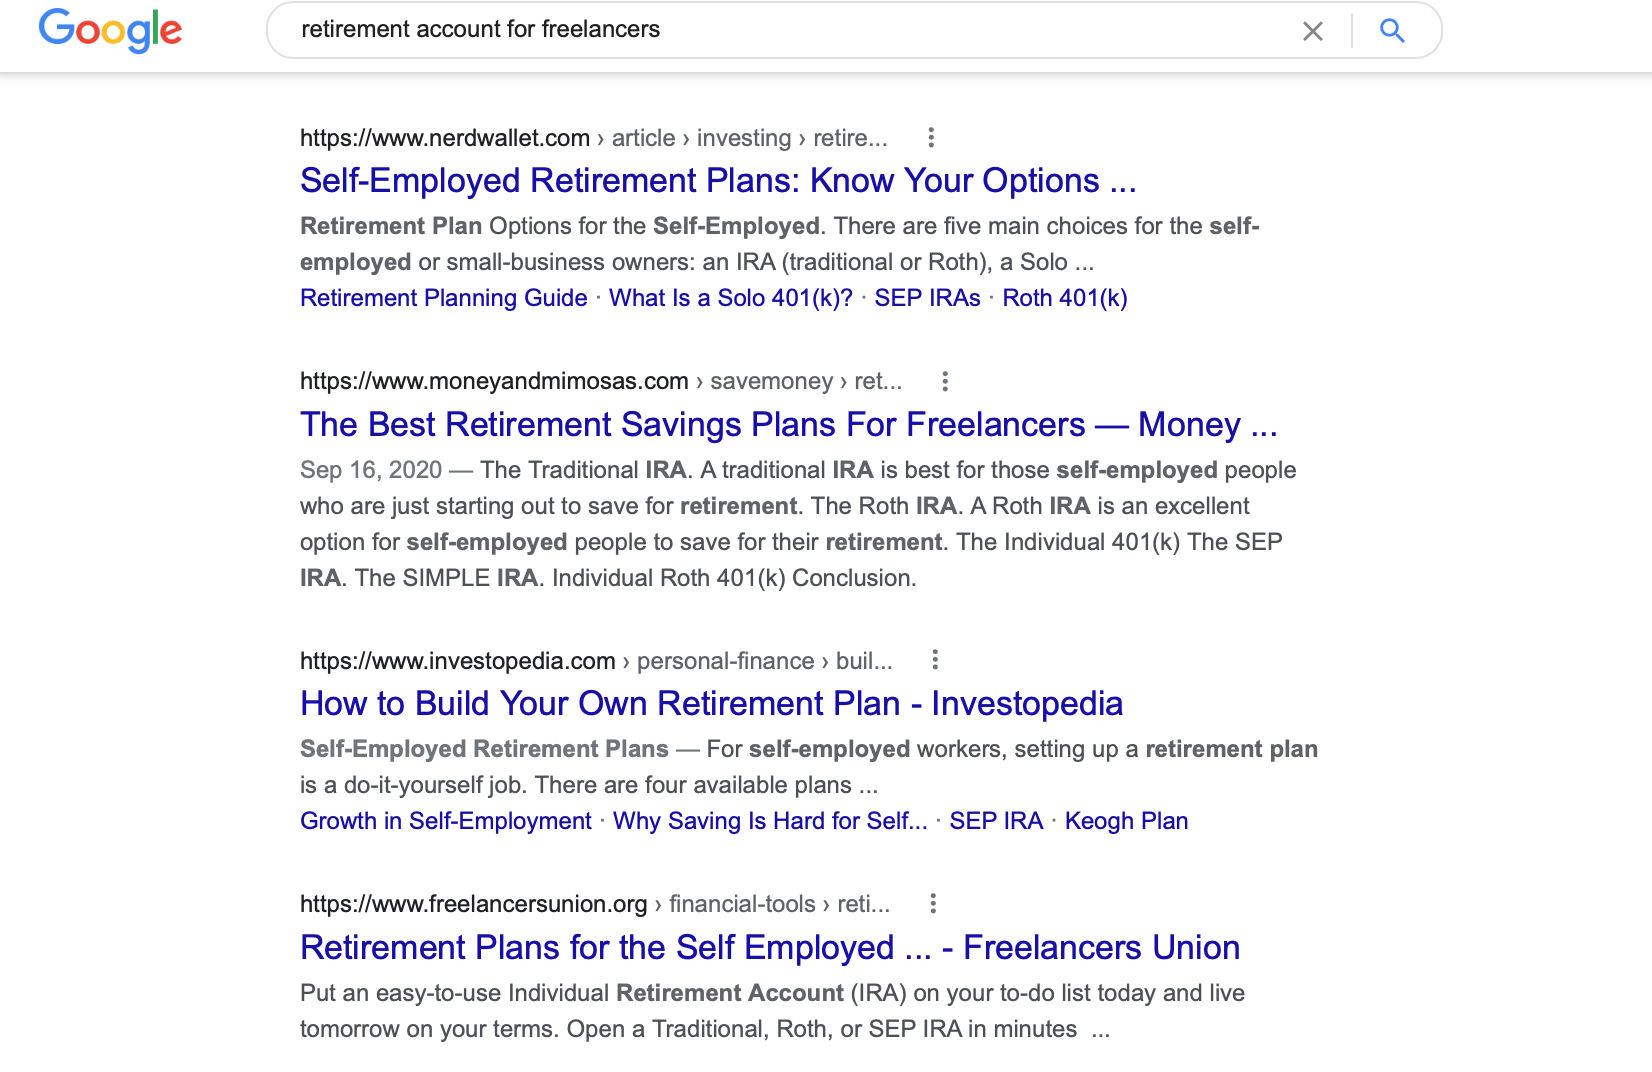 Google search showing retirement accounts for freelancers search results